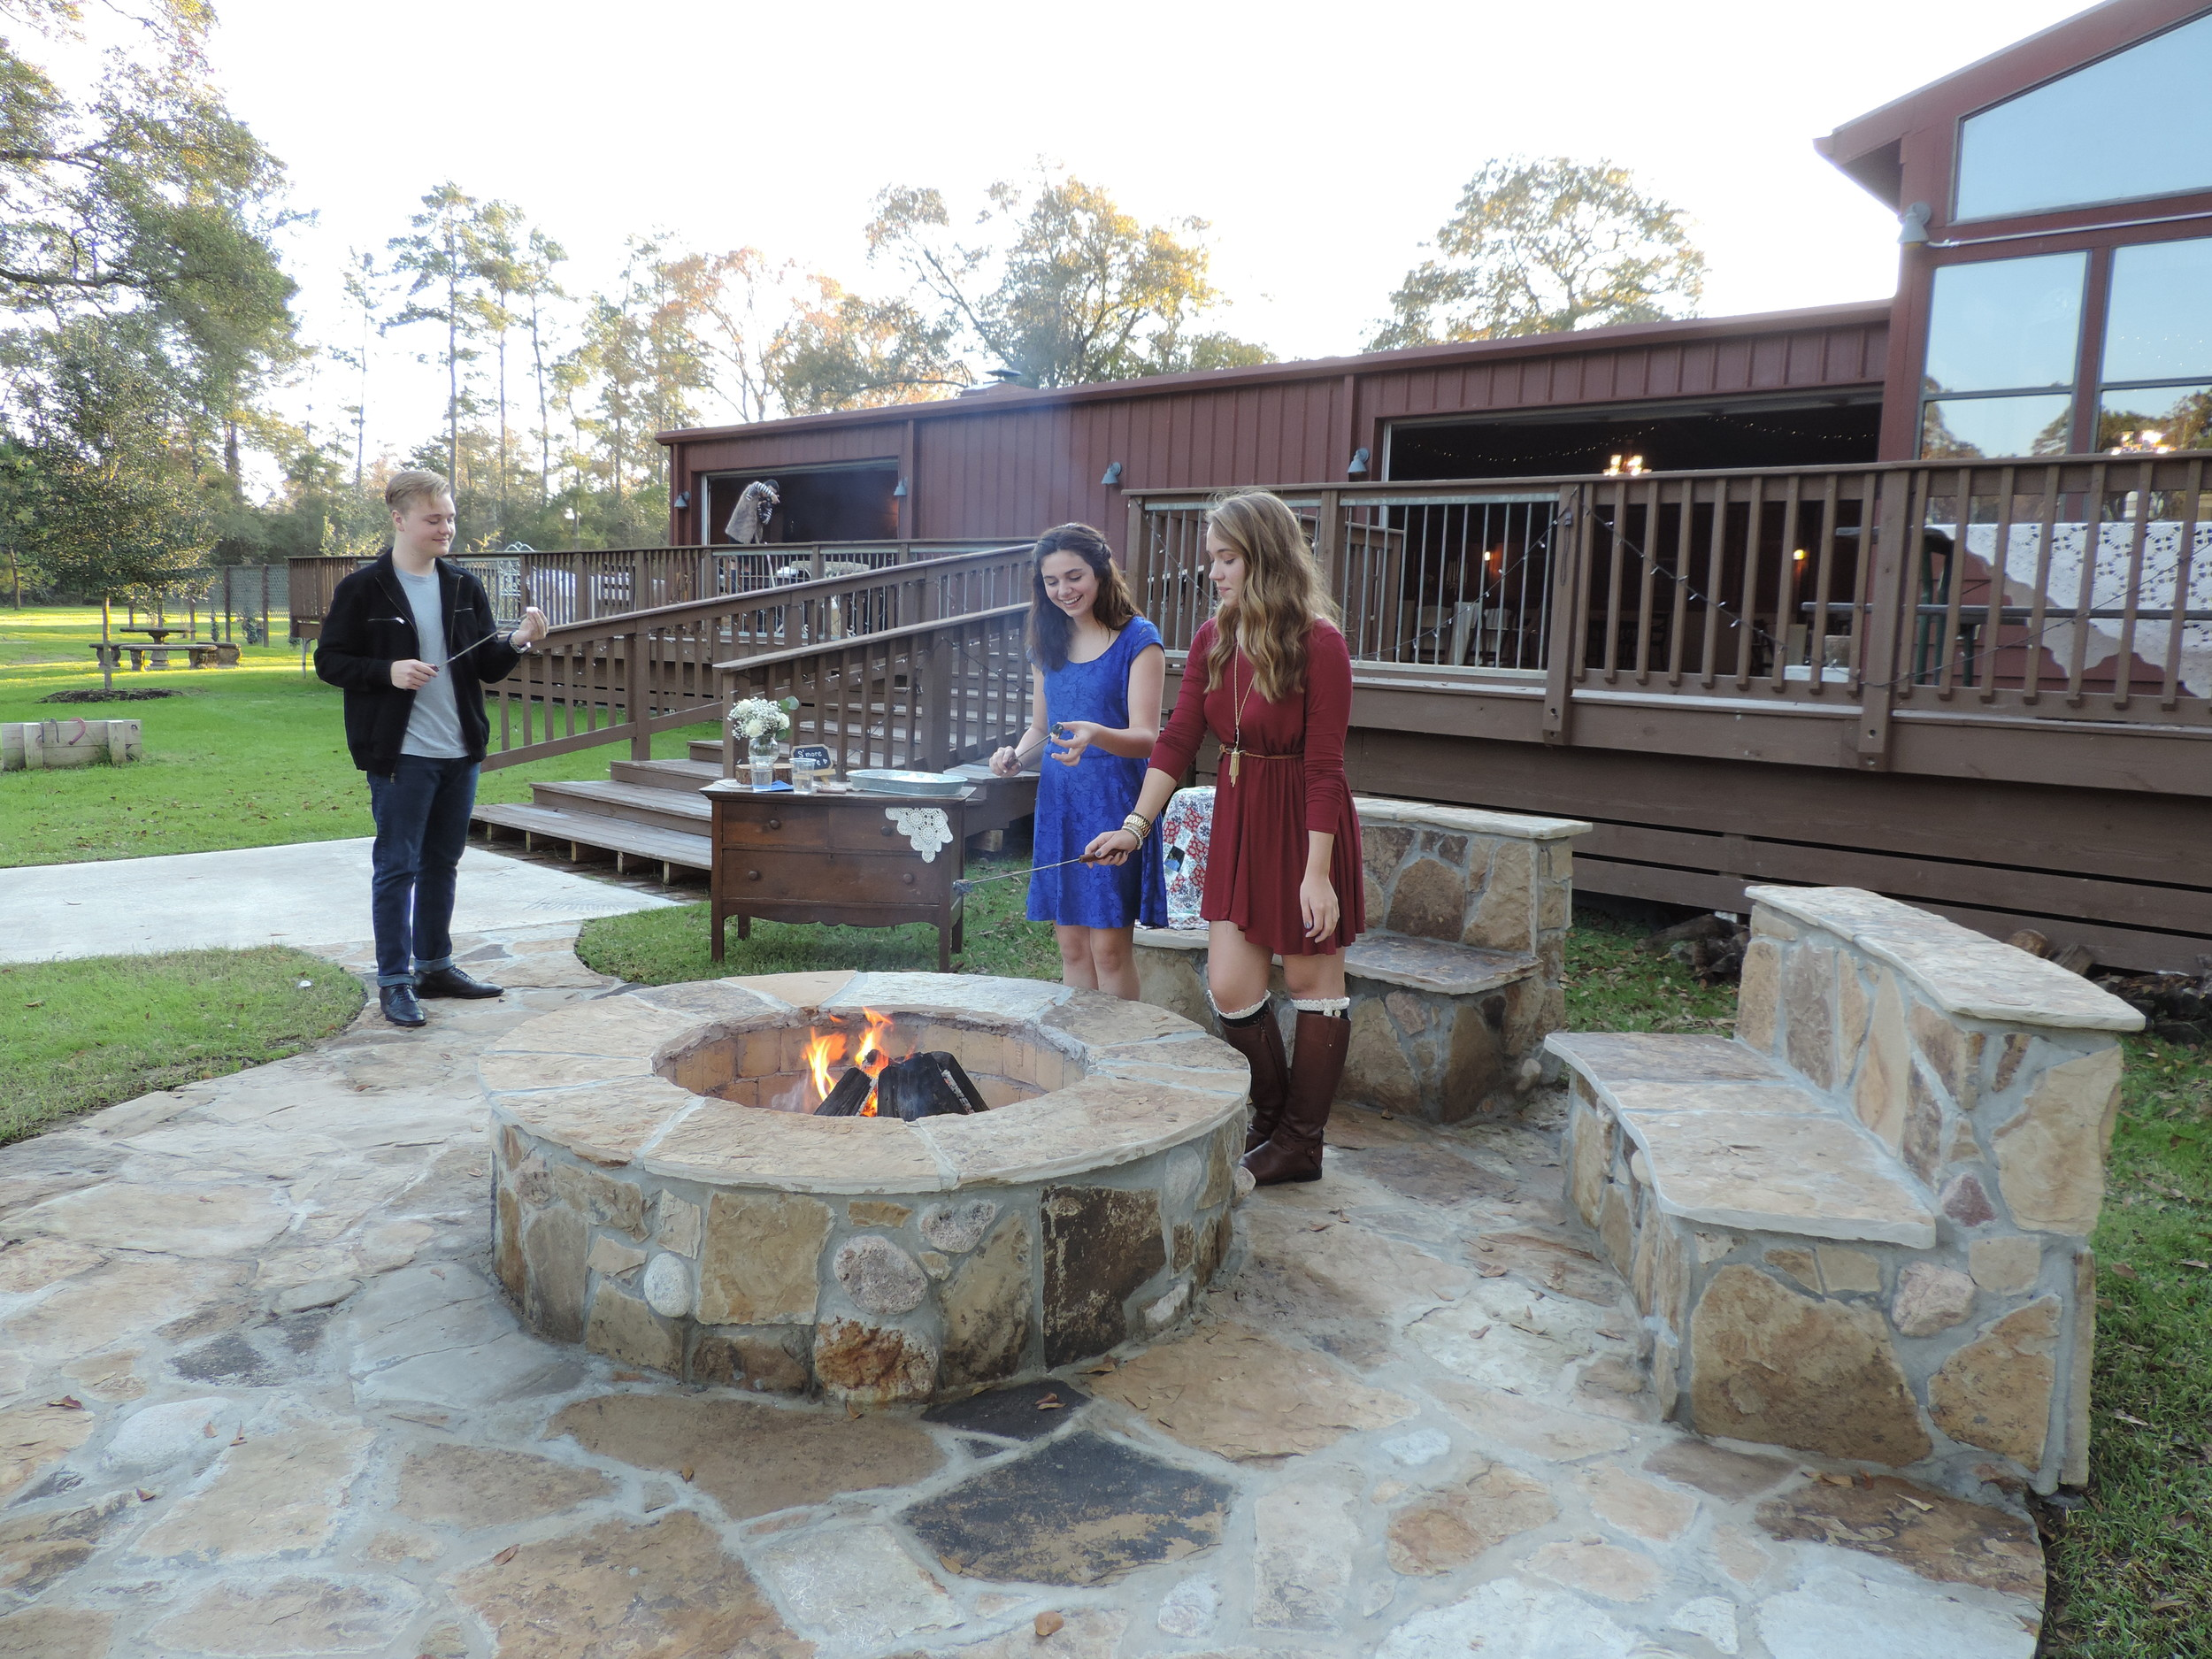 Some youngsters enjoying the large outdoor fire pit.